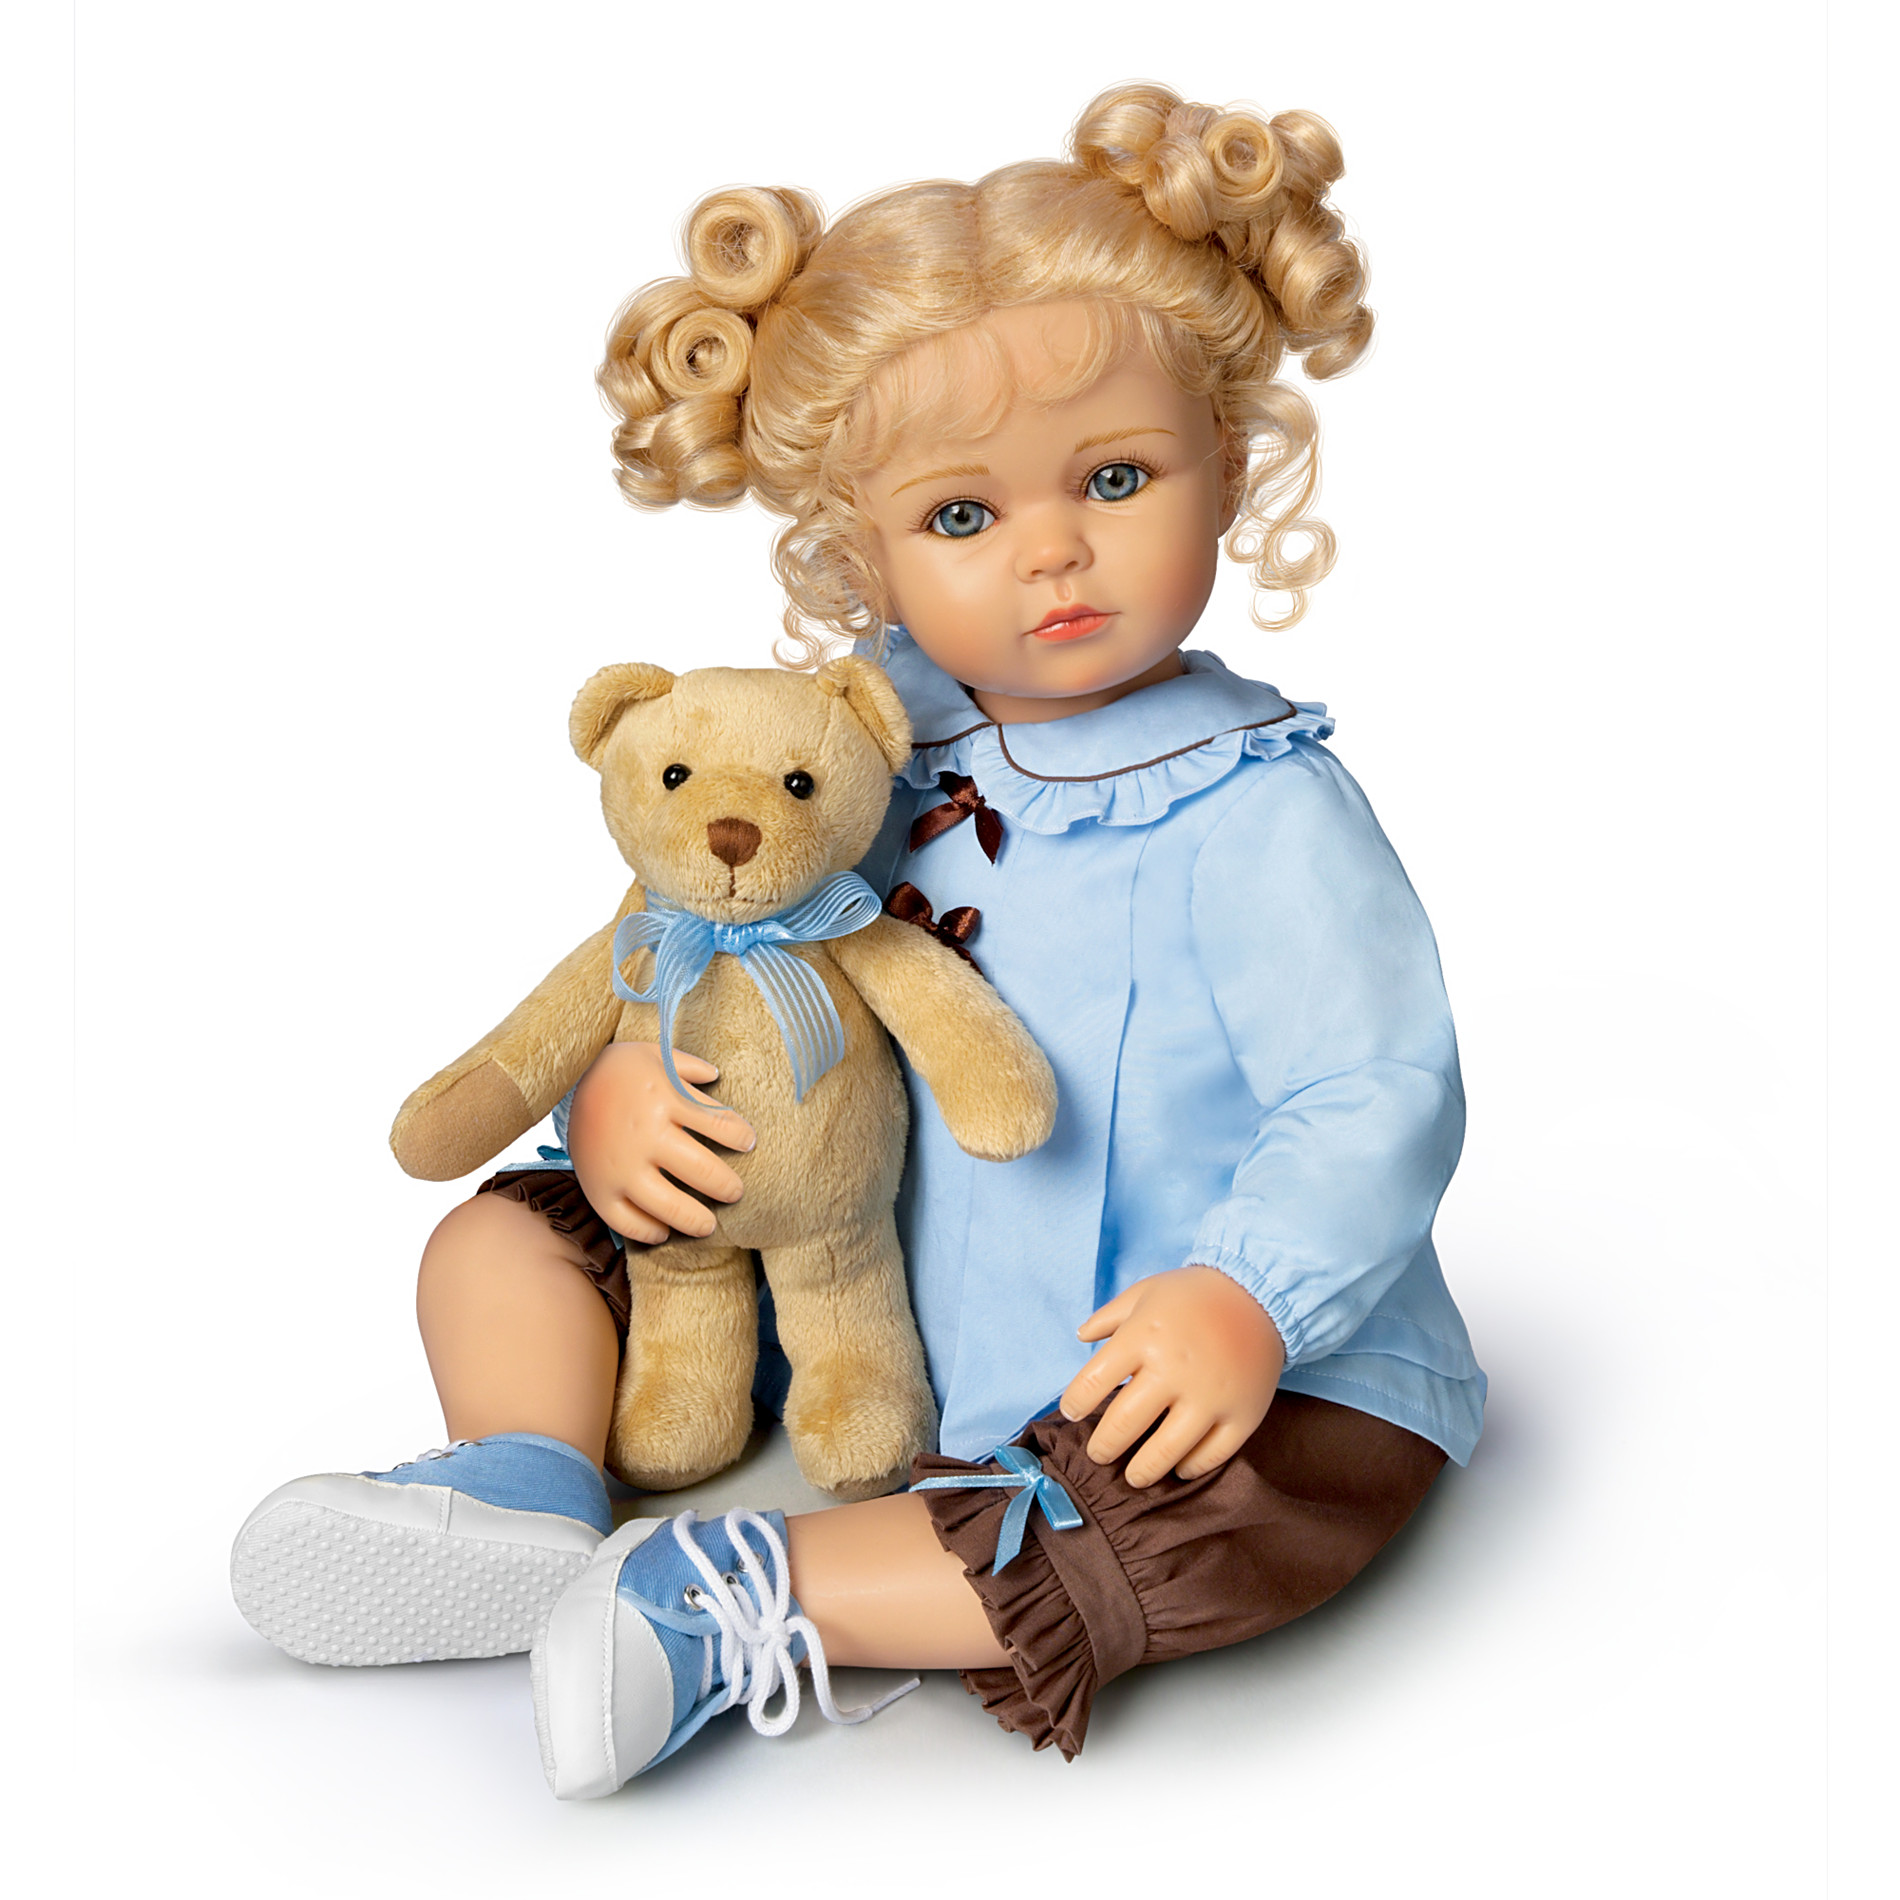 The Ashton-Drake Galleries Sophie Lifelike Baby Girl Doll With Teddy Bear at Sears.com